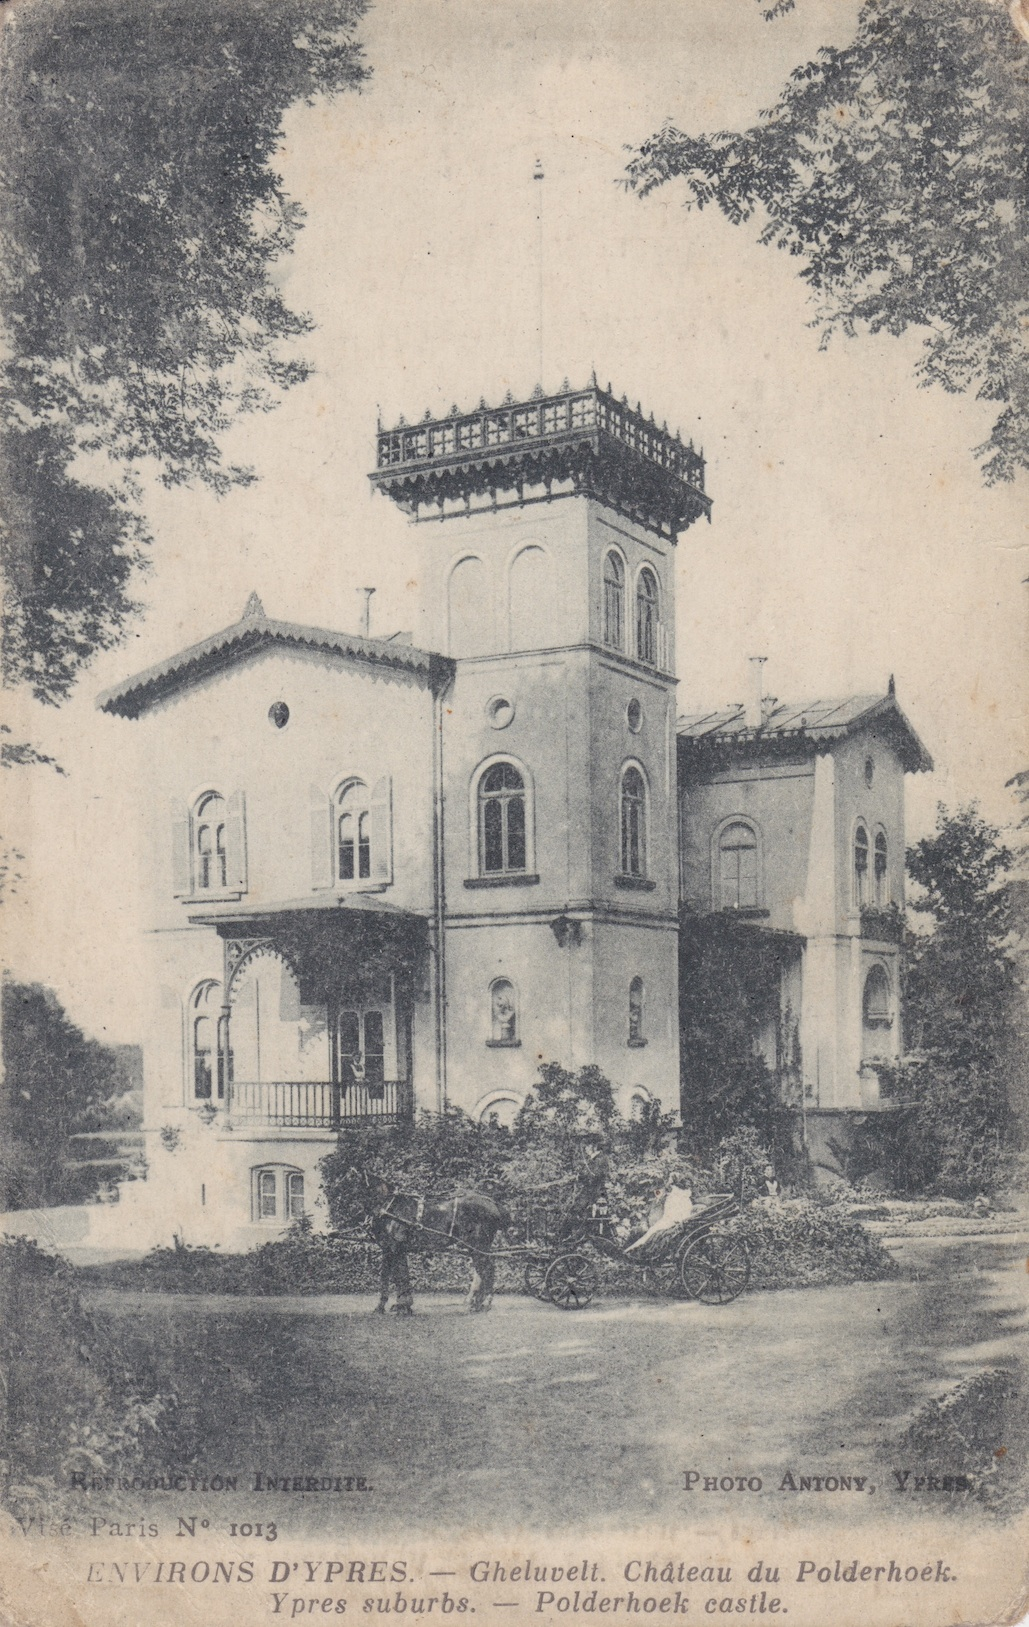 Pre-War view of Polderhoek Chateau Lemuel Lyes Collection